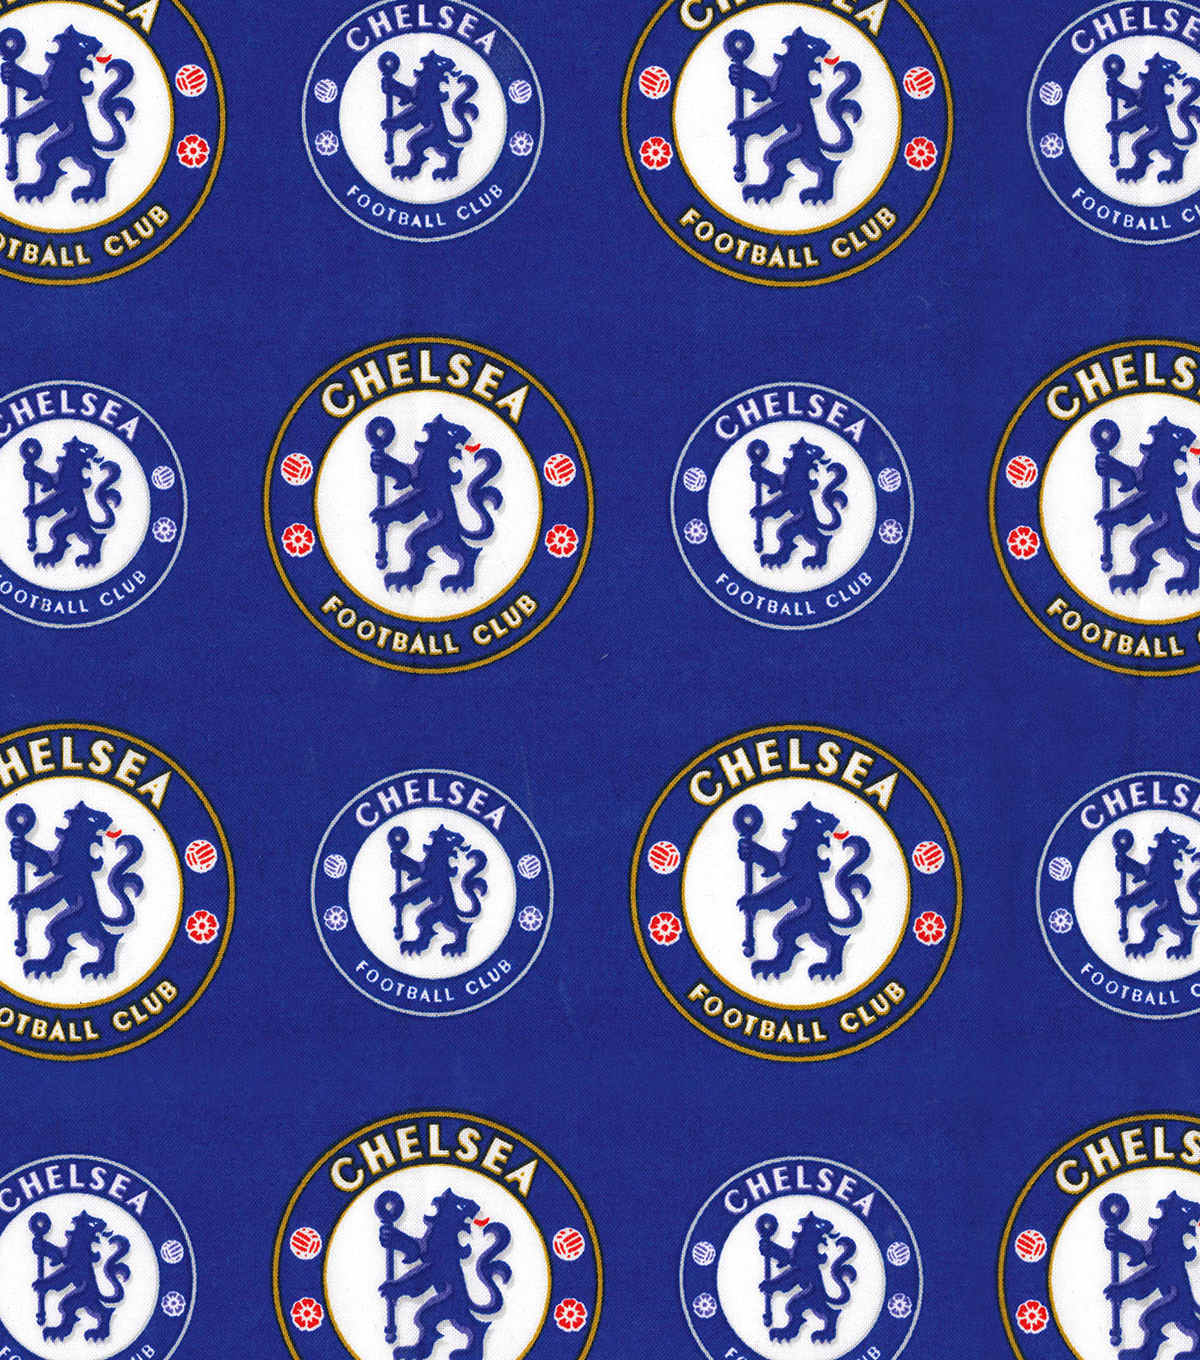 e4cb4c8e0df Chelsea Football Club Cotton Fabric | JOANN